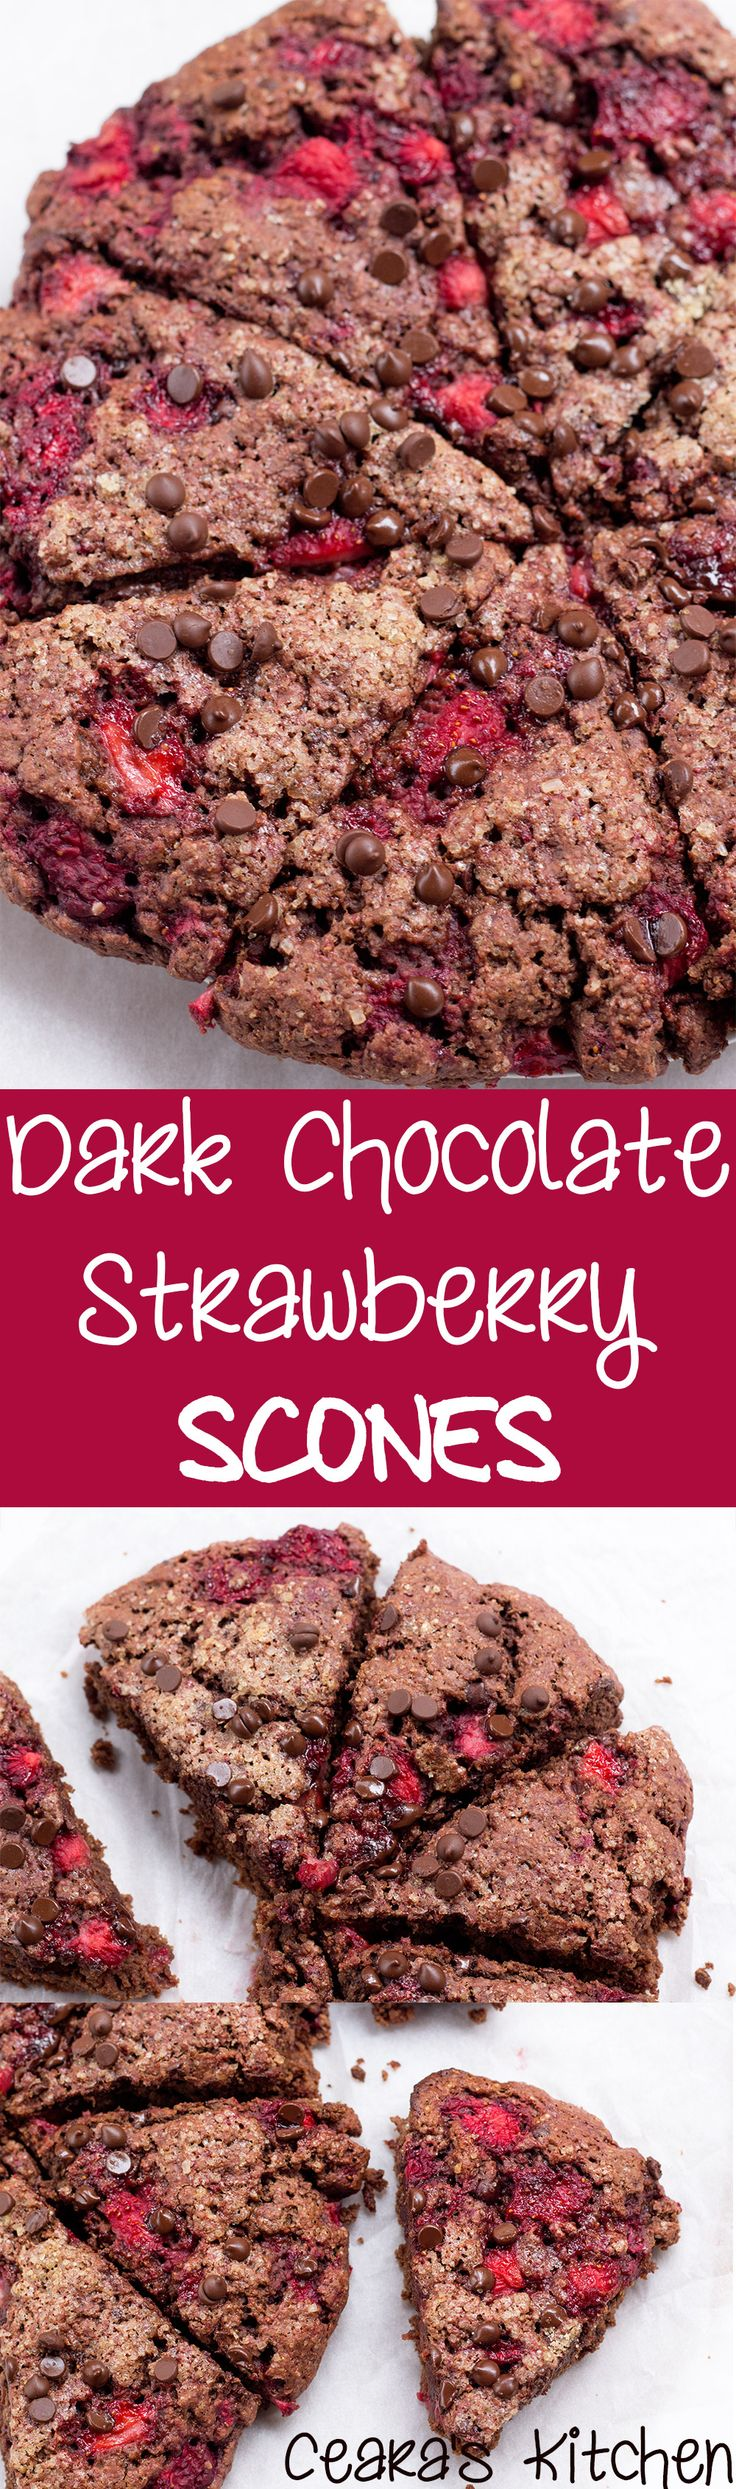 These Dark Chocolate Strawberry Scones are made with full fat coconut milk instead of butter! They are perfectly crispy on the outside and soft and chocolatey on the inside! #Healthy #Breakfast #Brunch #Scones #HealthyBaking #HealthyFood #Chocolate #Vegan #VeganBaking #VeganFood